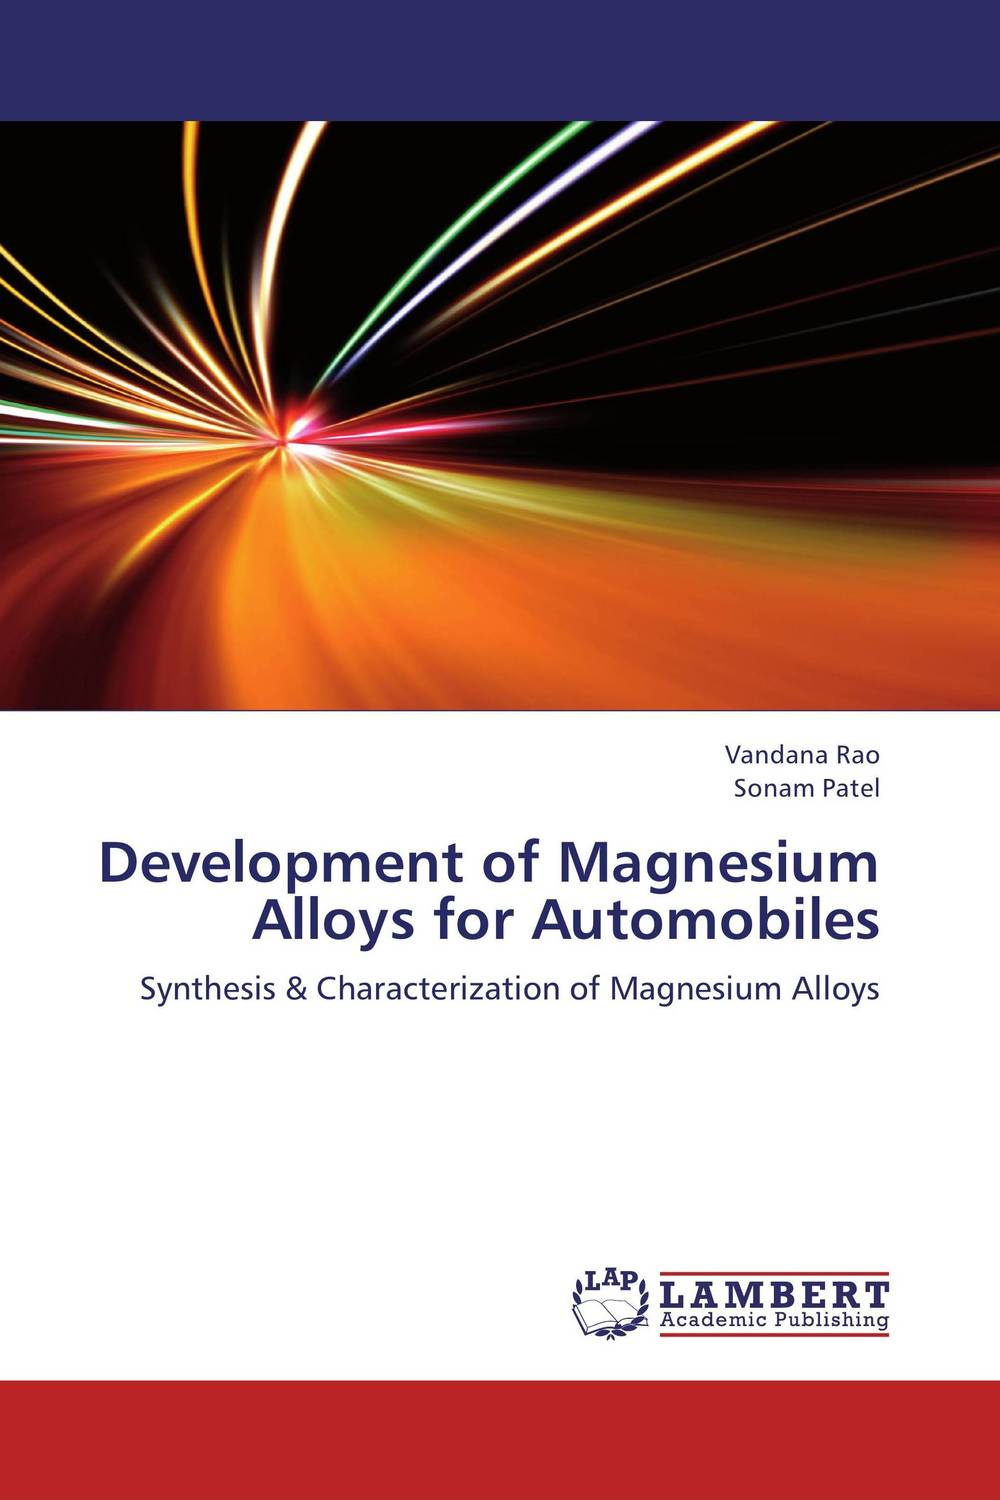 Development of Magnesium Alloys for Automobiles